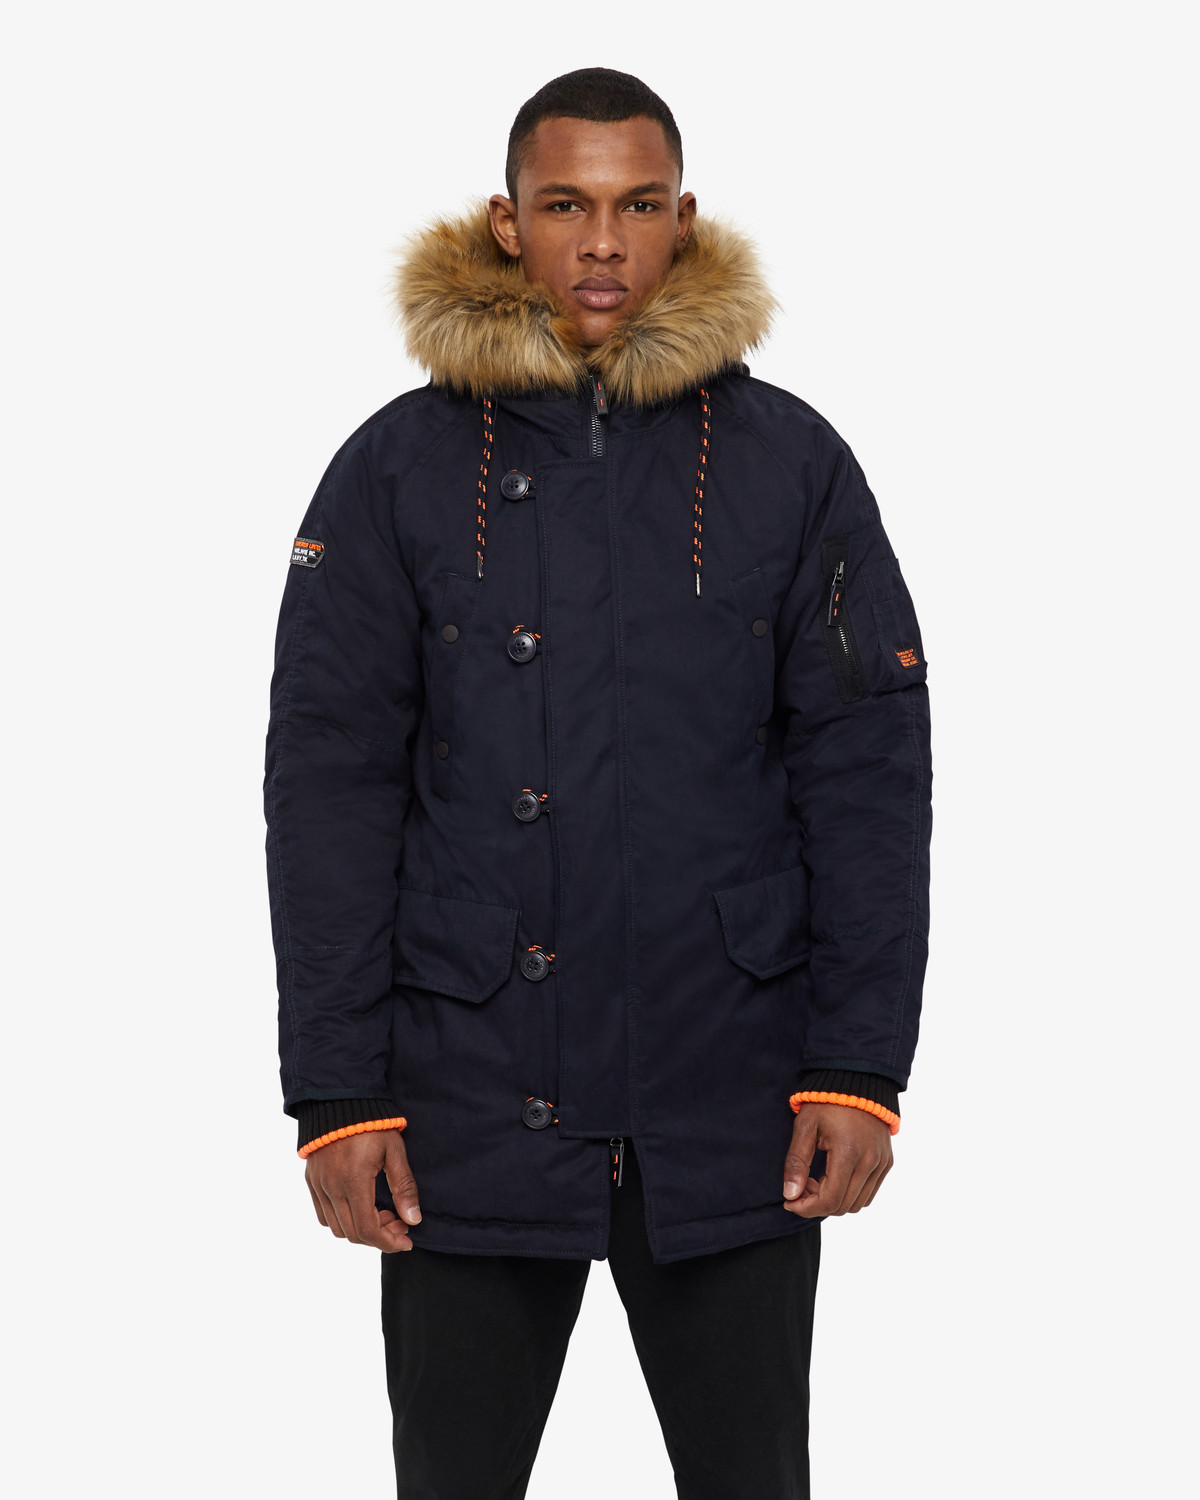 Superdry winterjacket - Dark navy